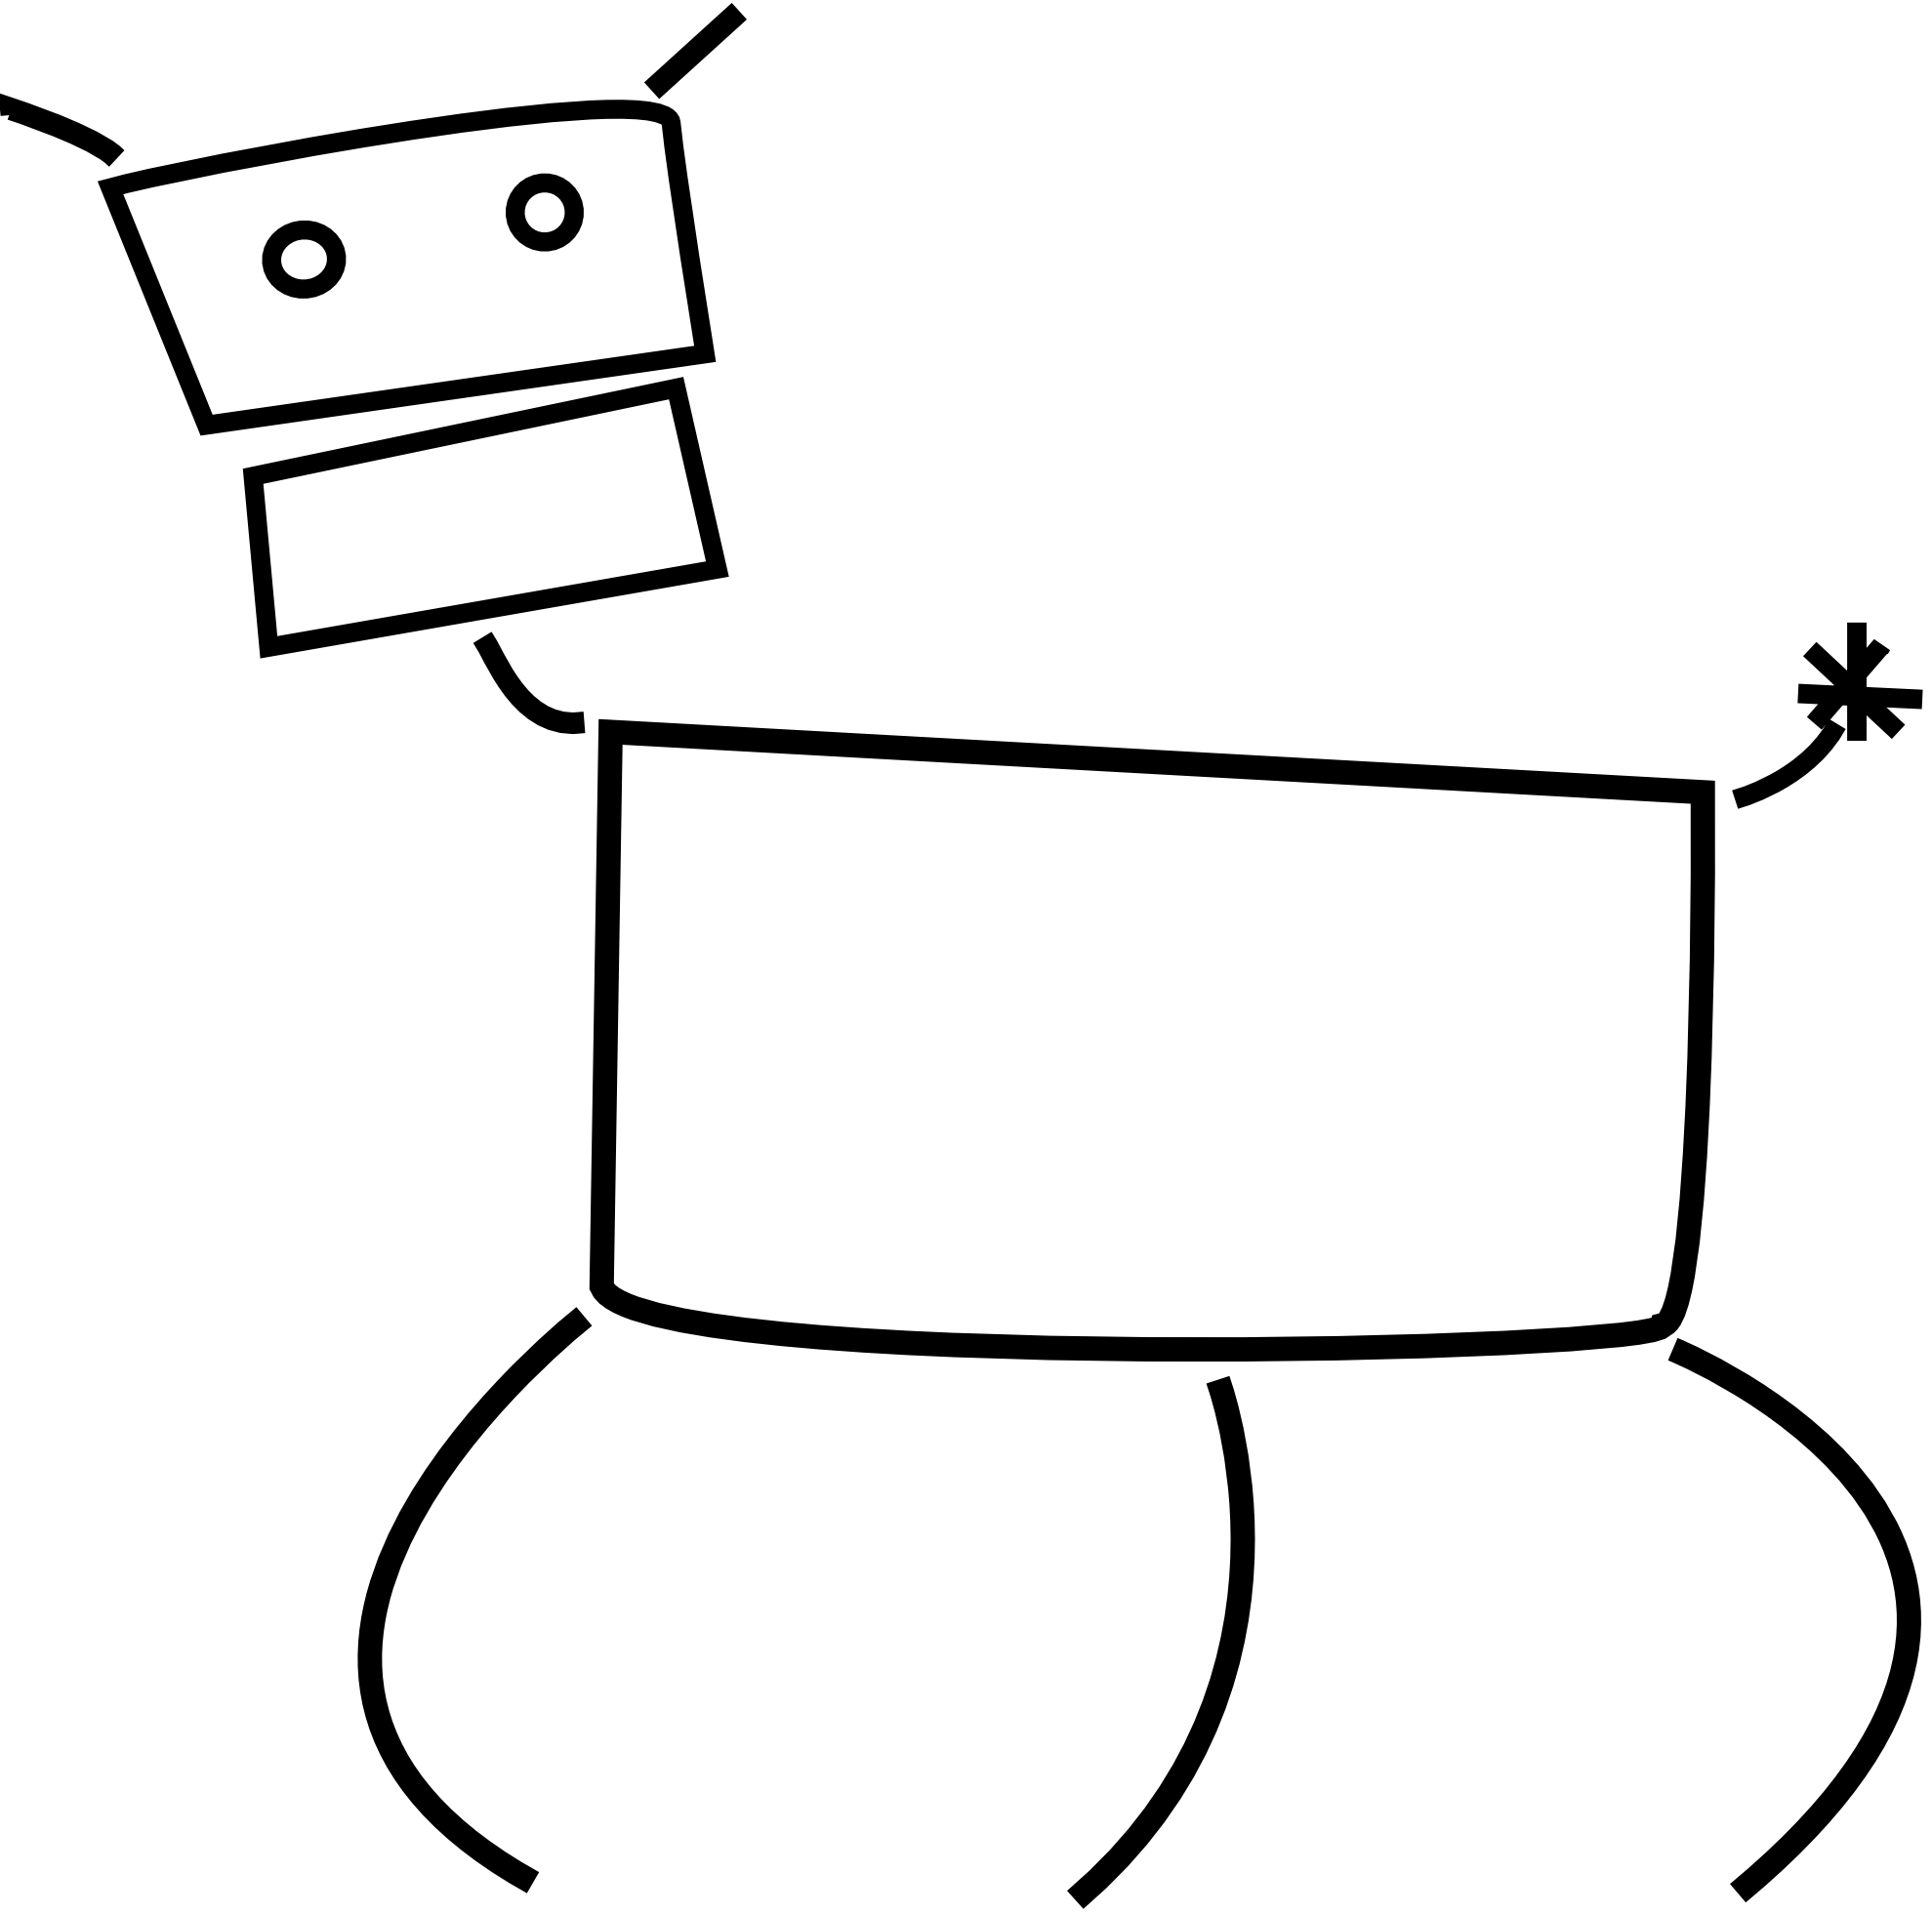 Free picture of a. Jumping clipart black and white